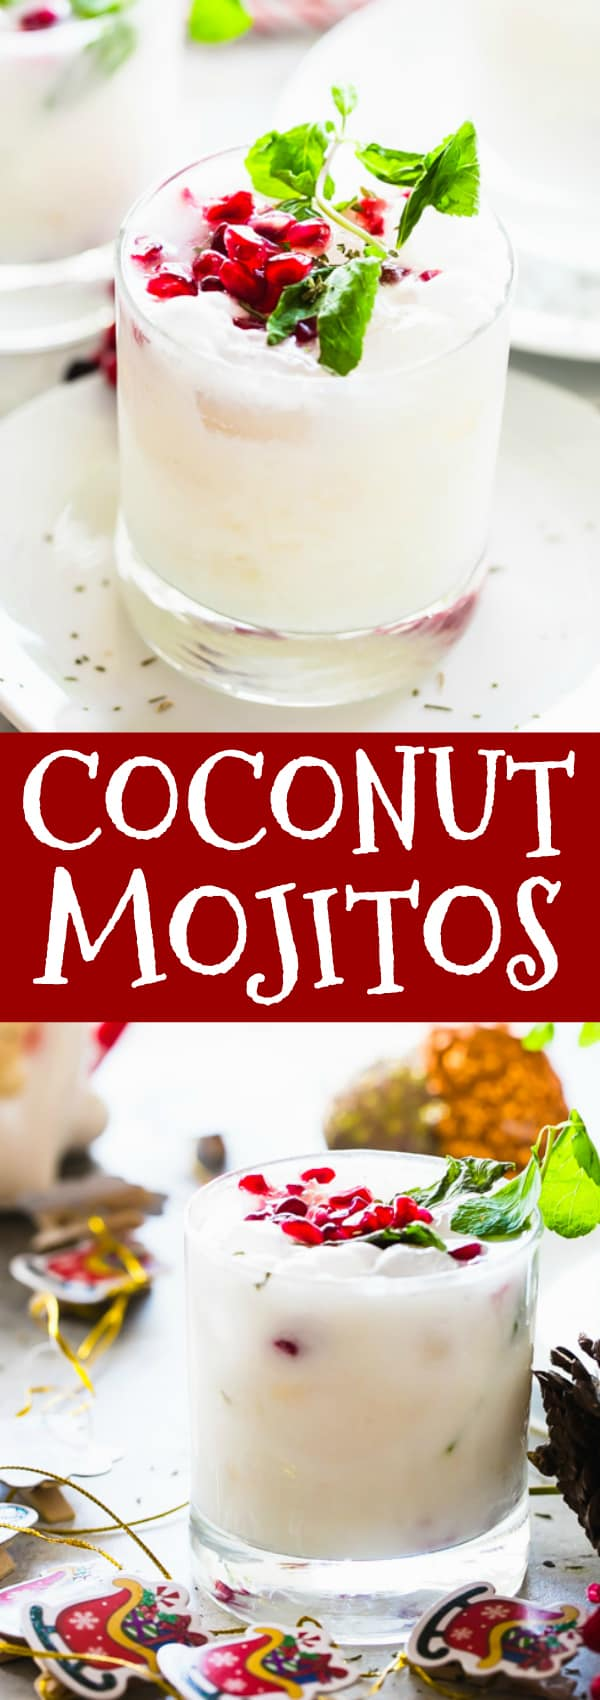 Coconut Mojitos - A white winter twist on the classic Mojito flavored with coconut cream, fresh mint, rum, and lime juice, and served with a garnish of pomegranate seeds for a festive touch. #mojitos #christmas #christmasdrinks #holidays #holidaycocktails #pomegranates #coconuts #christmascocktail